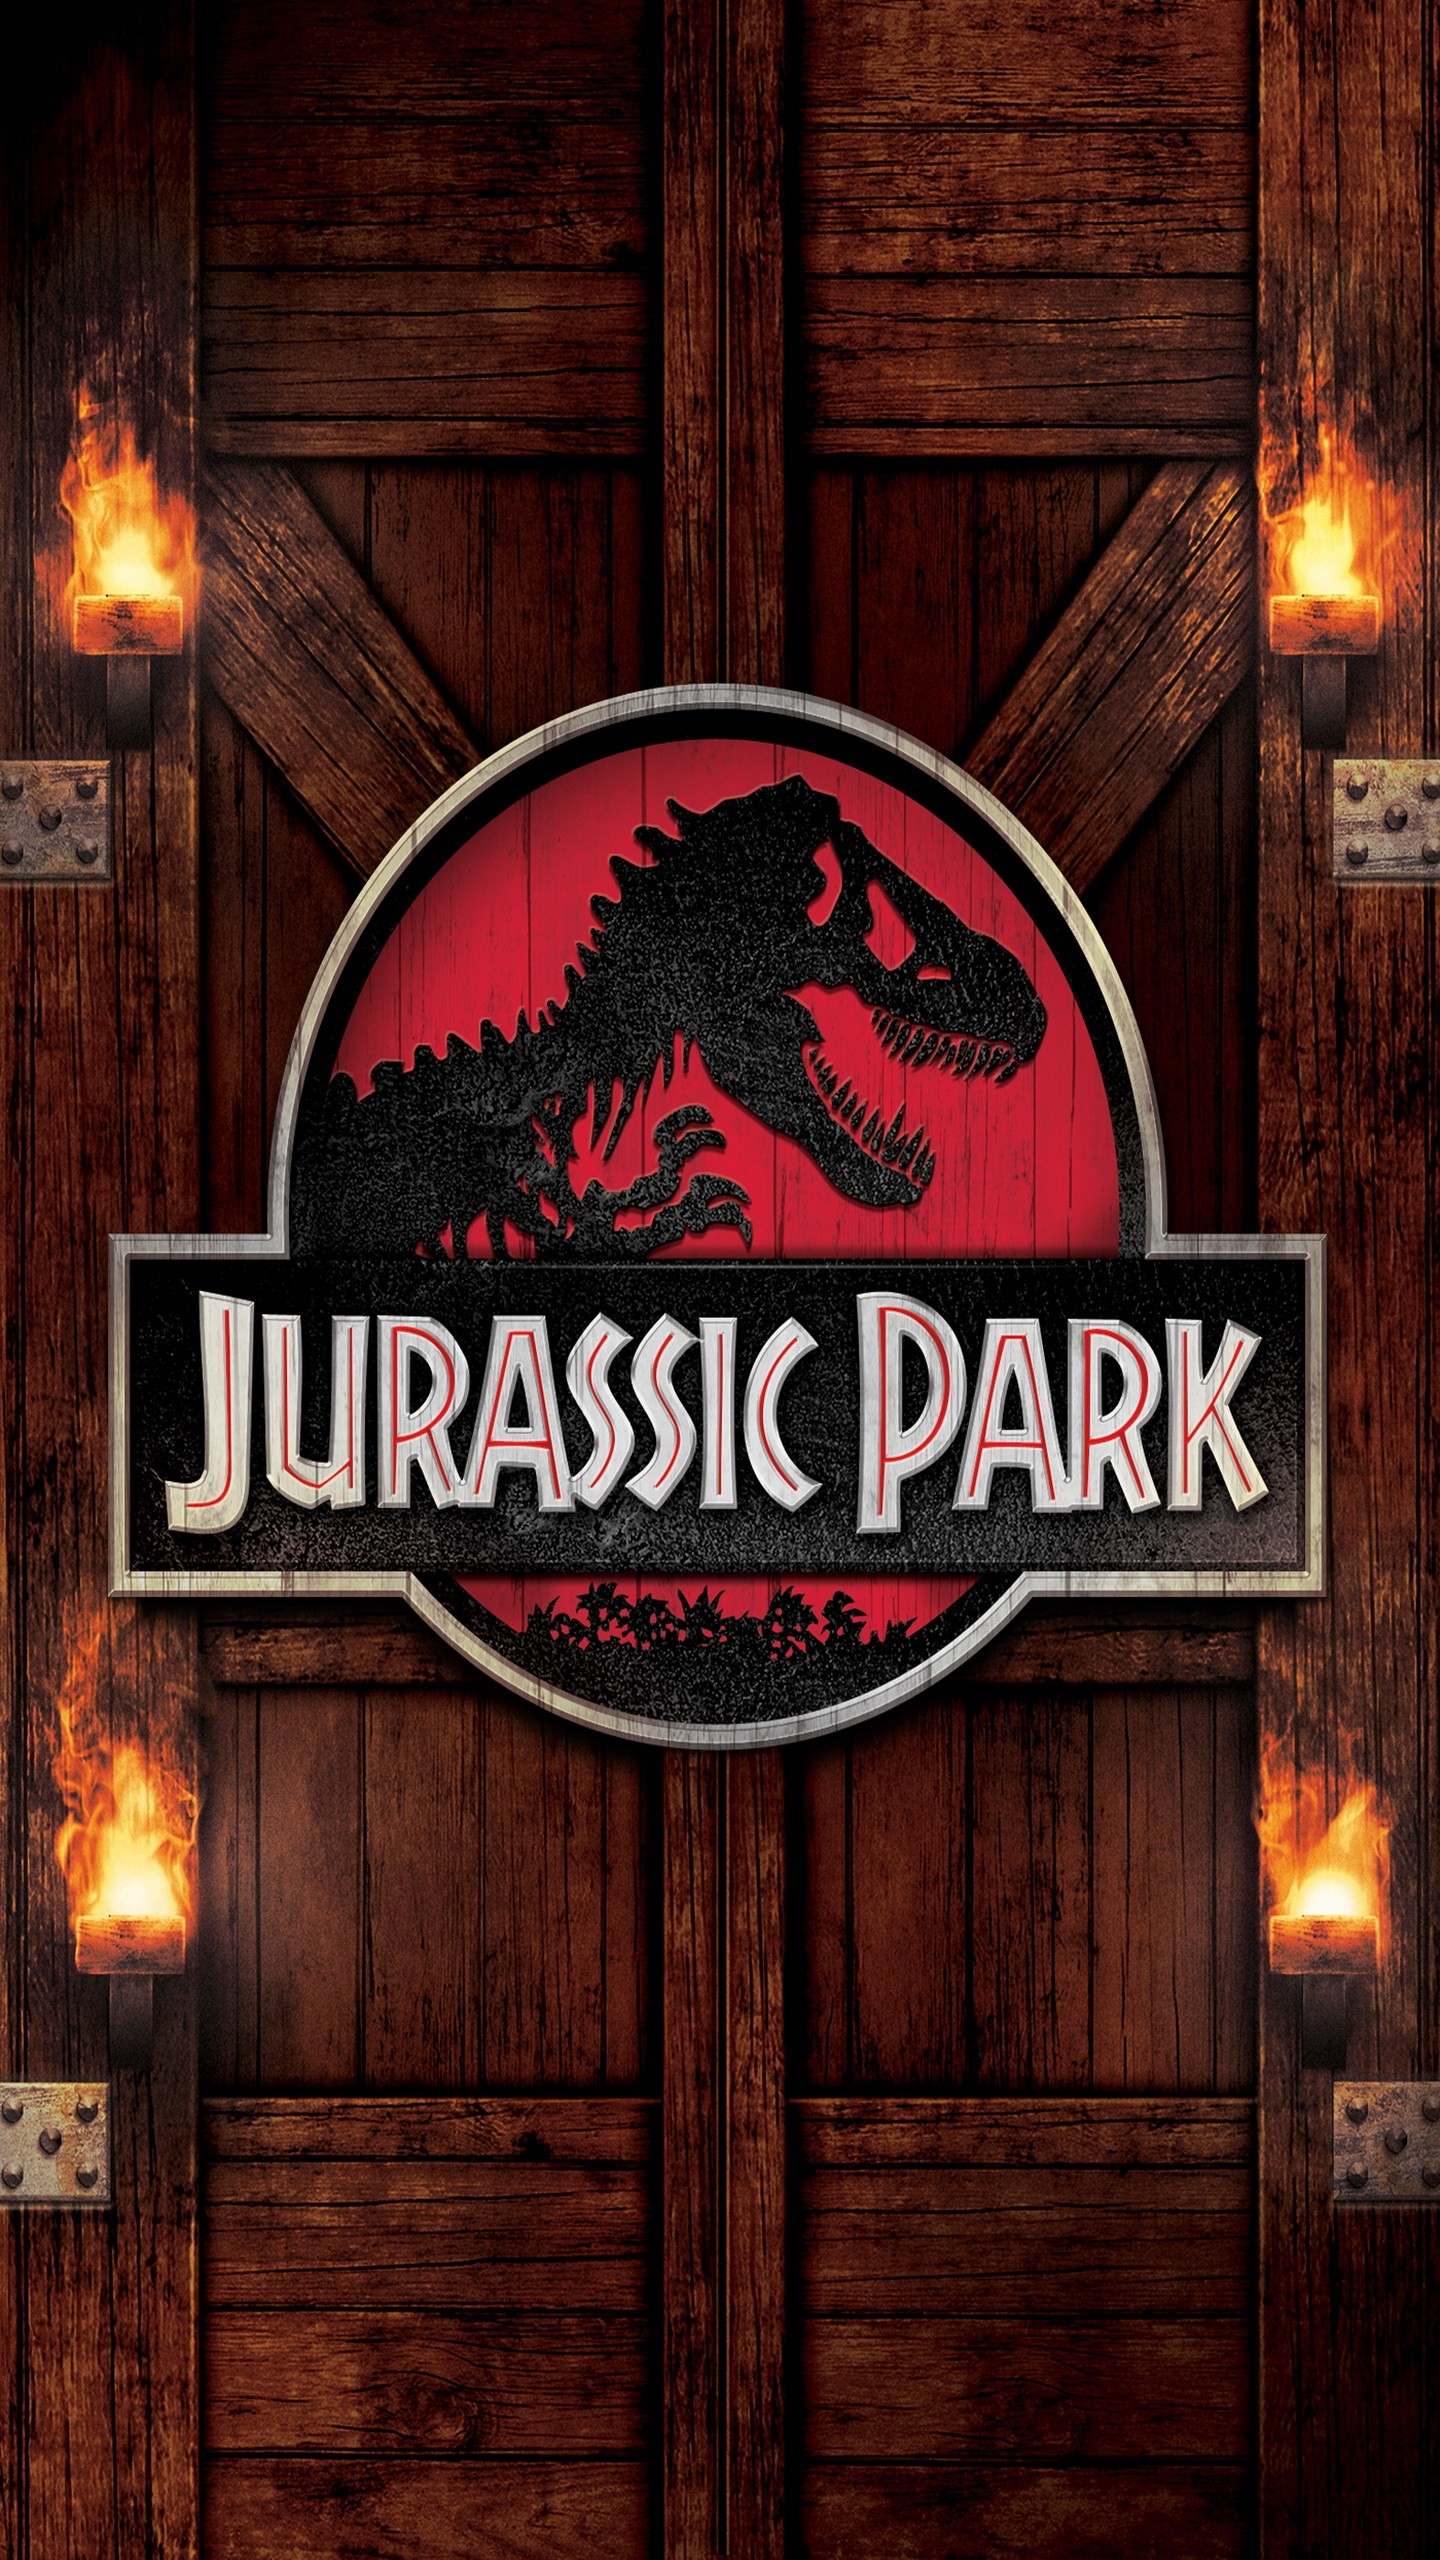 Vertical Full Hd Wallpapers Jurassic Park Wallpaper Iphone 70 Images